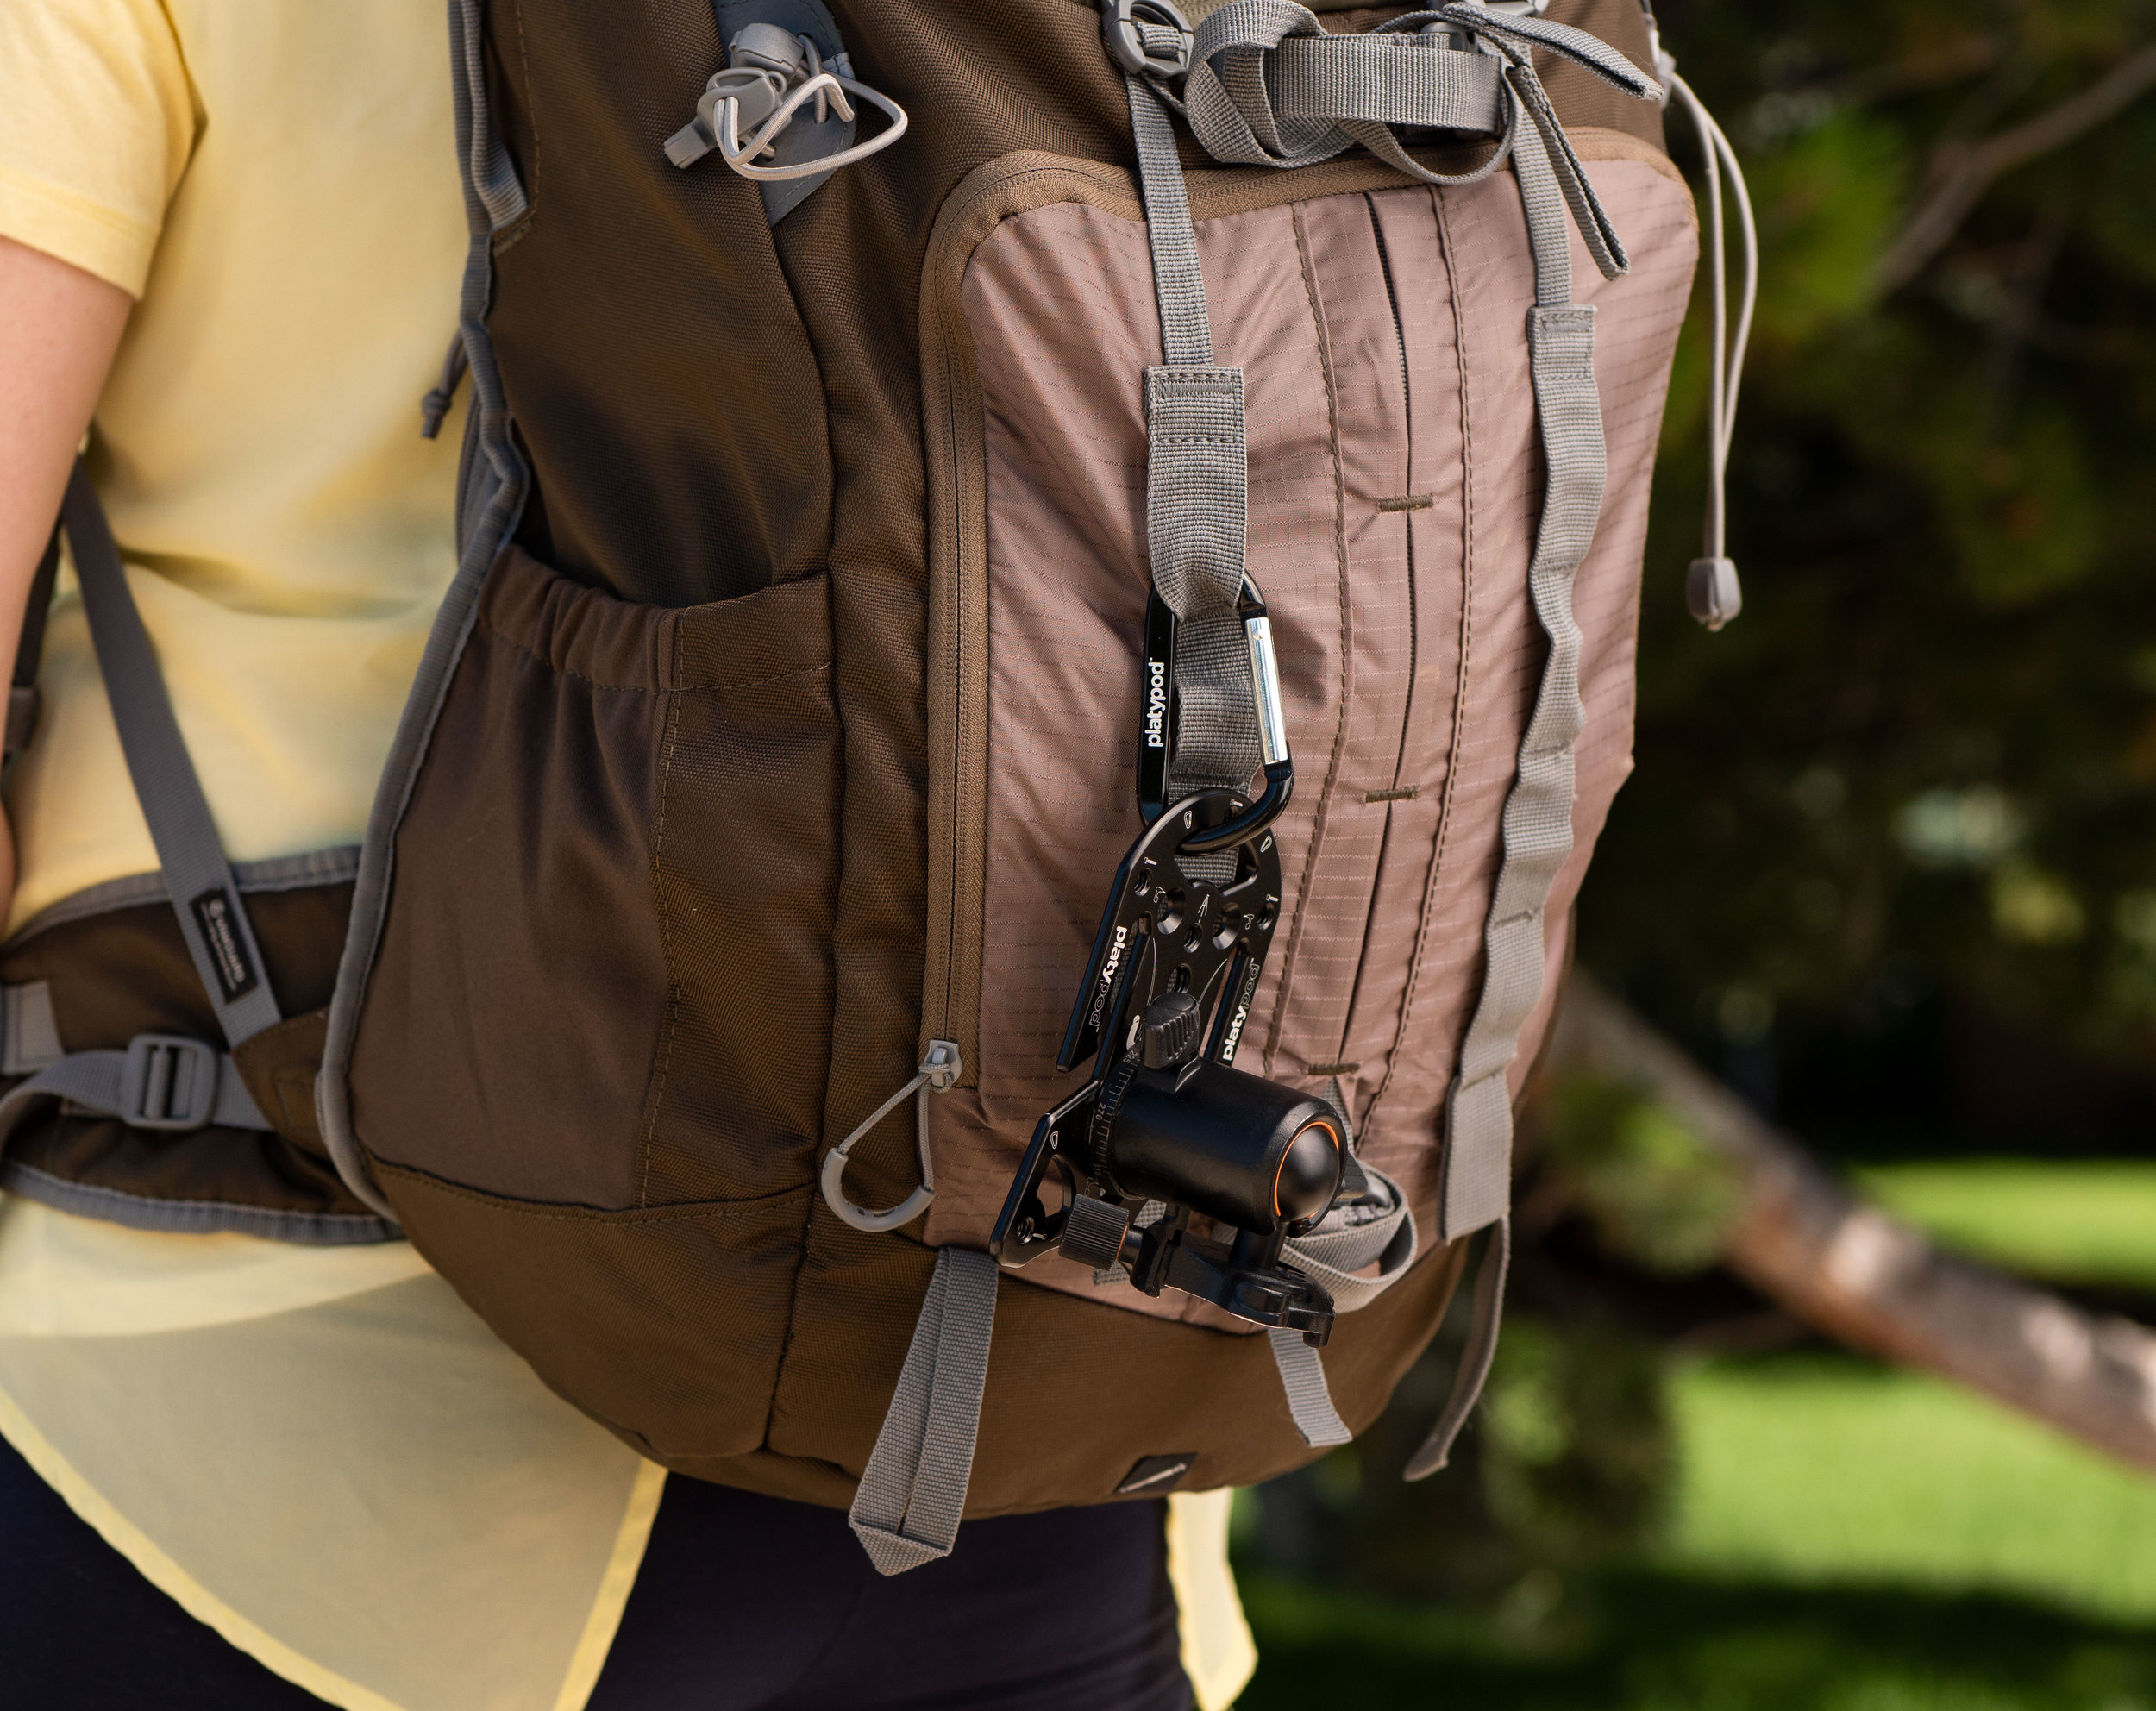 Light and discreet - Effortlessly slips into the side or back pocket of camera bags without sacrificing room for a lens or flash